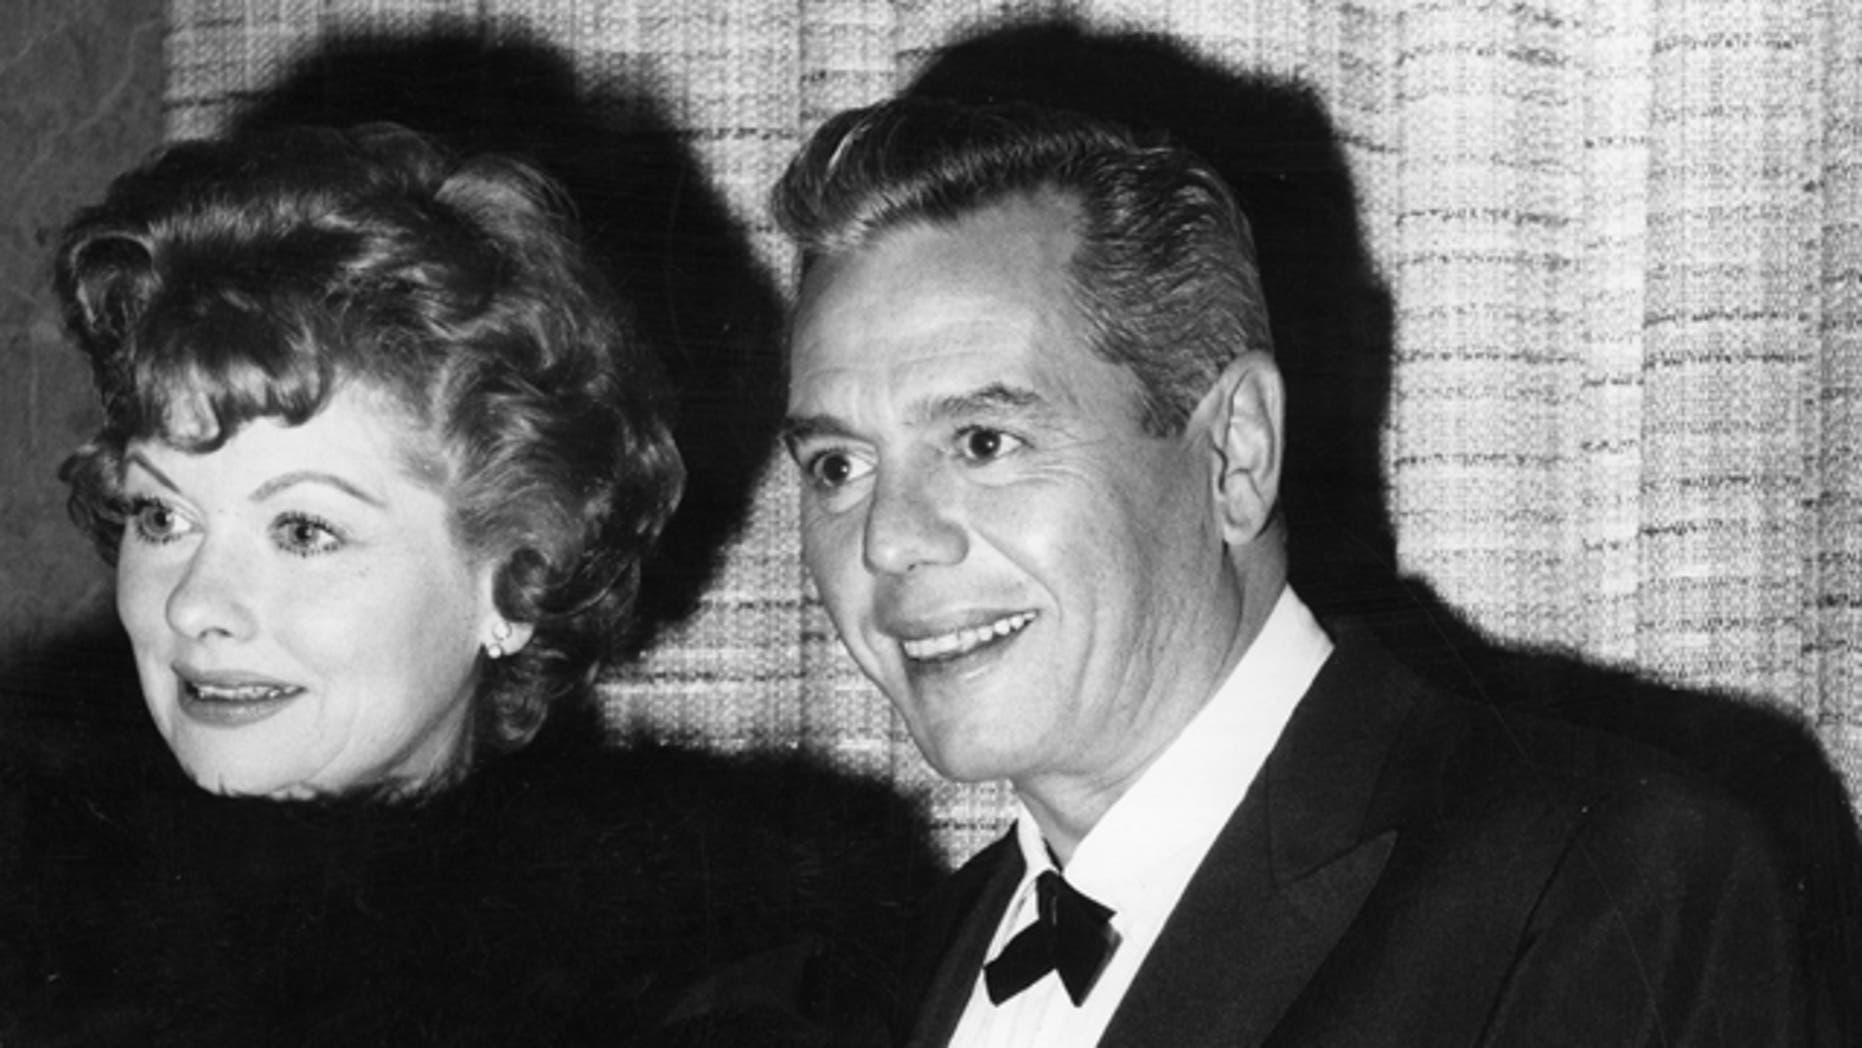 """File photo:  American actress Lucille Ball (1911 - 1989) with her Cuban husband and co-star of the popular TV show """"I Love Lucy,"""" Desi Arnaz (1917 - 1986). The celebrity couple set up the Desilu Studios together."""